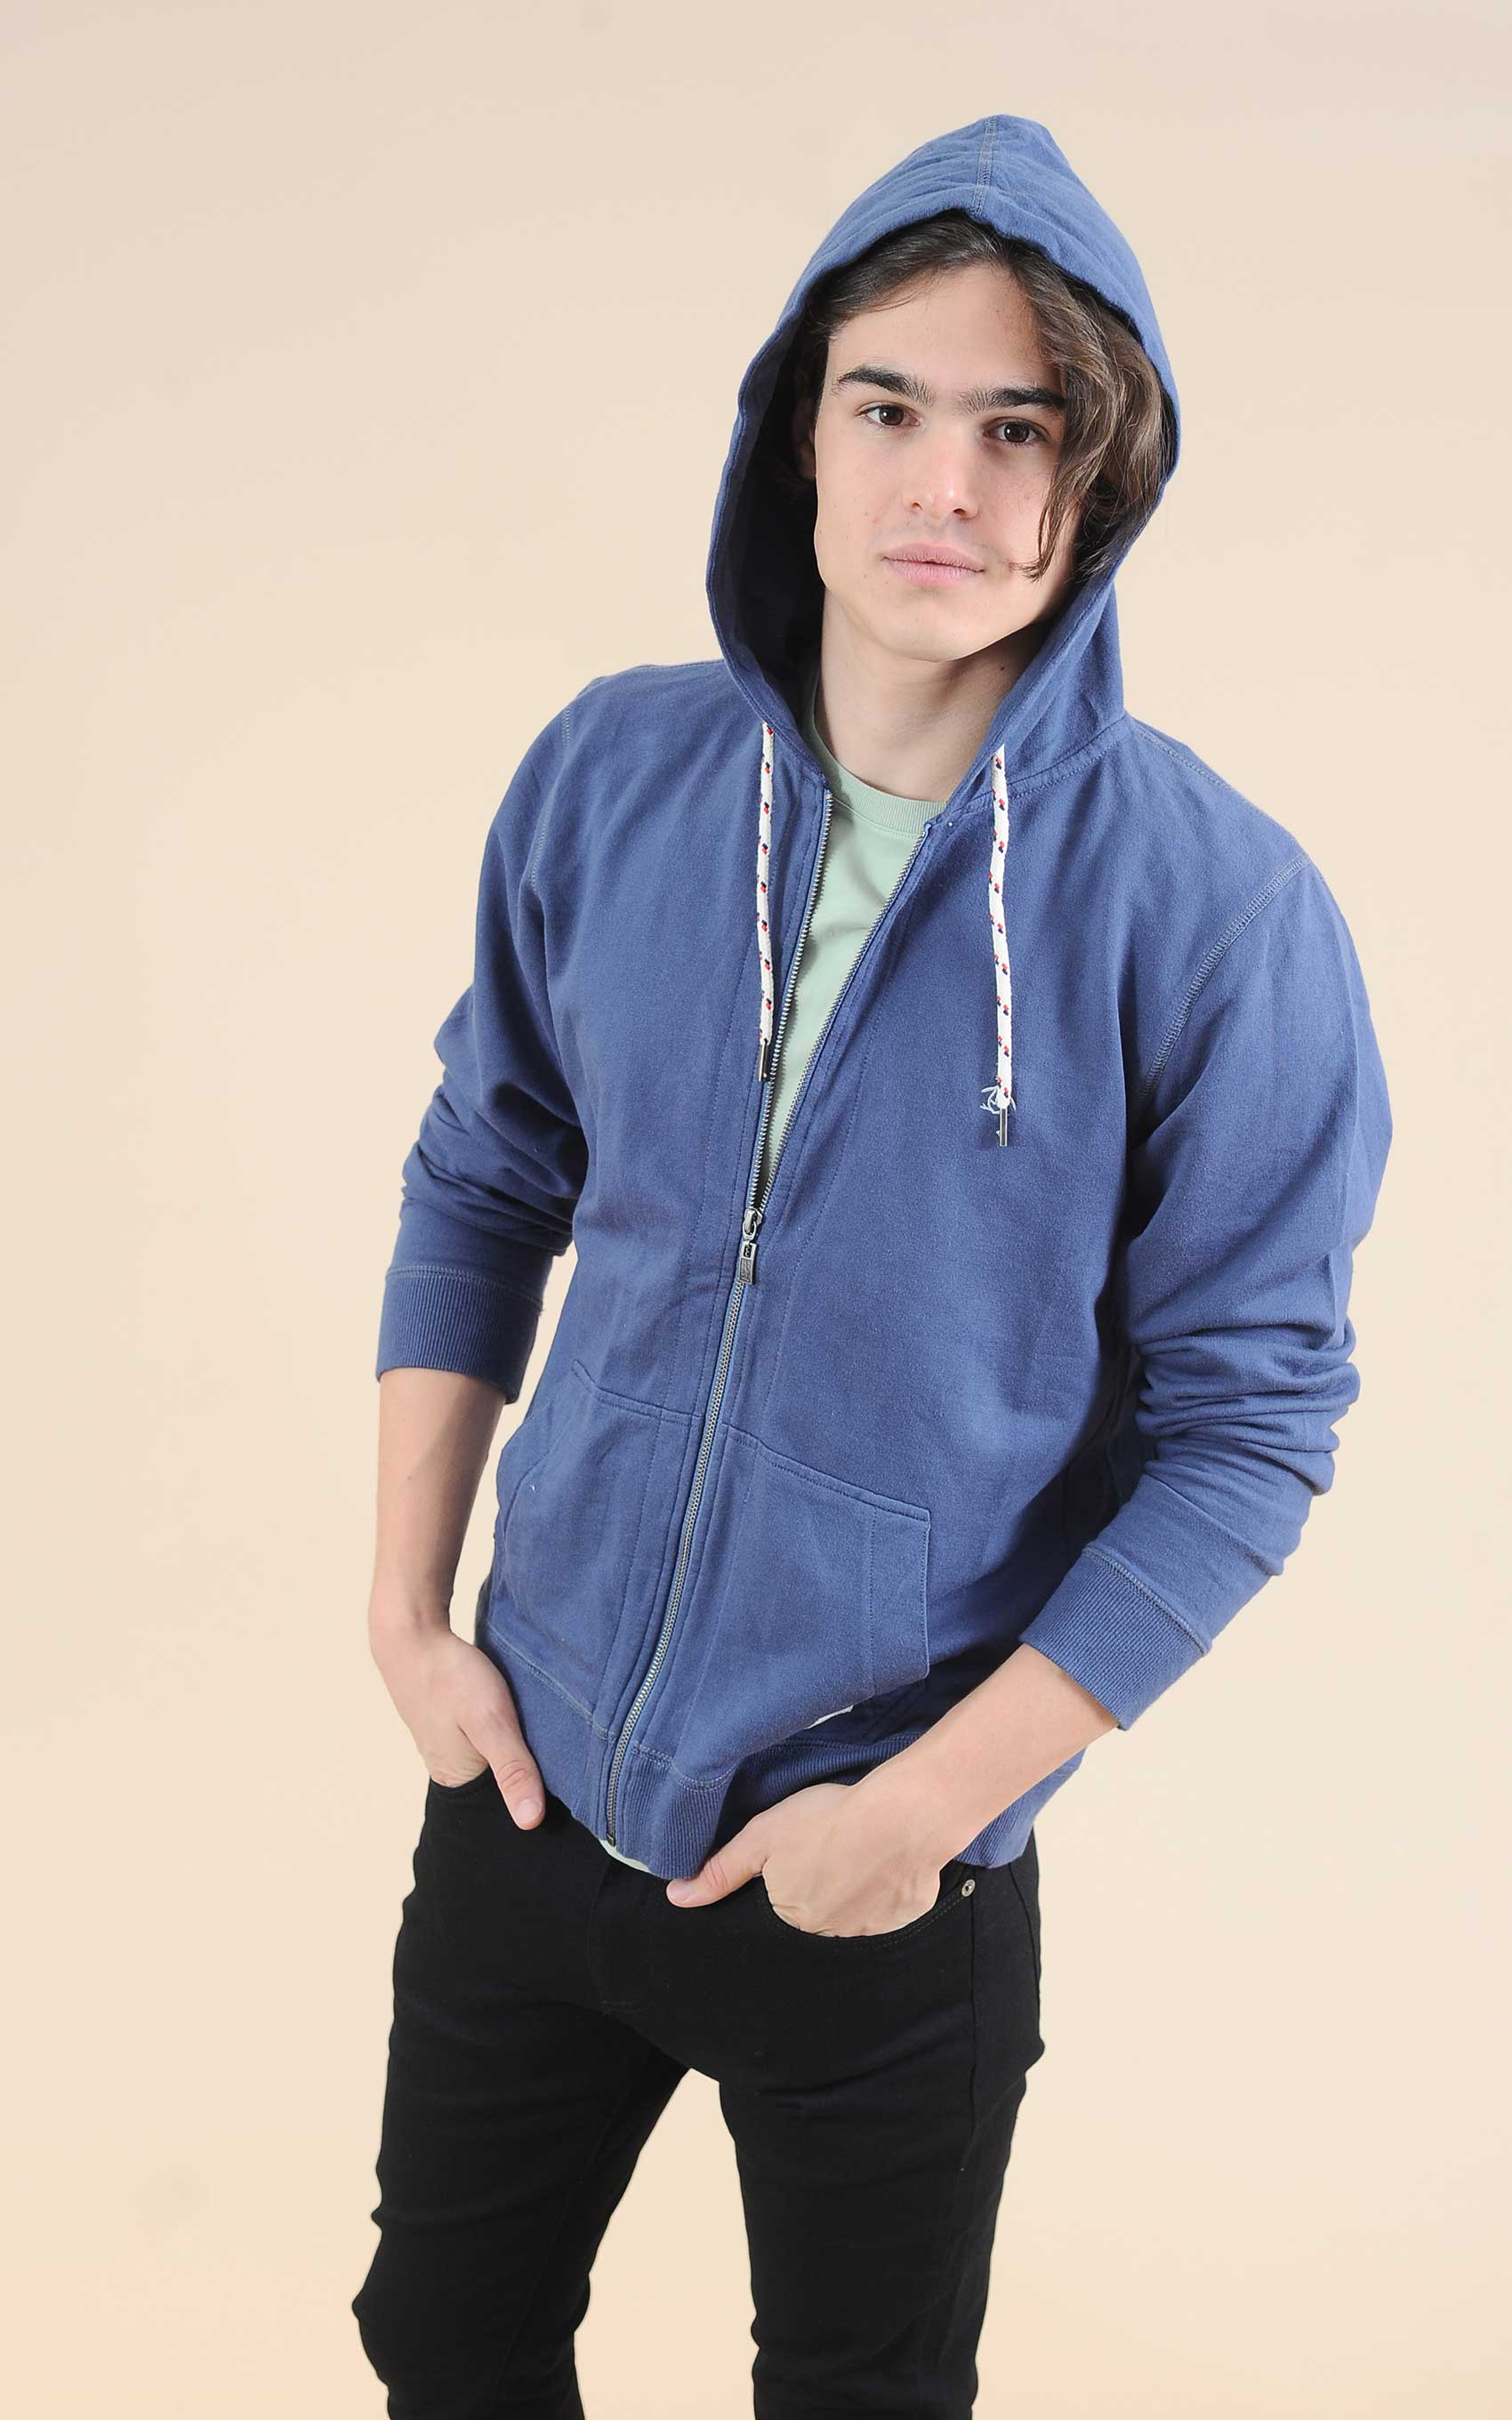 penguin_basic-hoody_43-18-2021__picture-17856